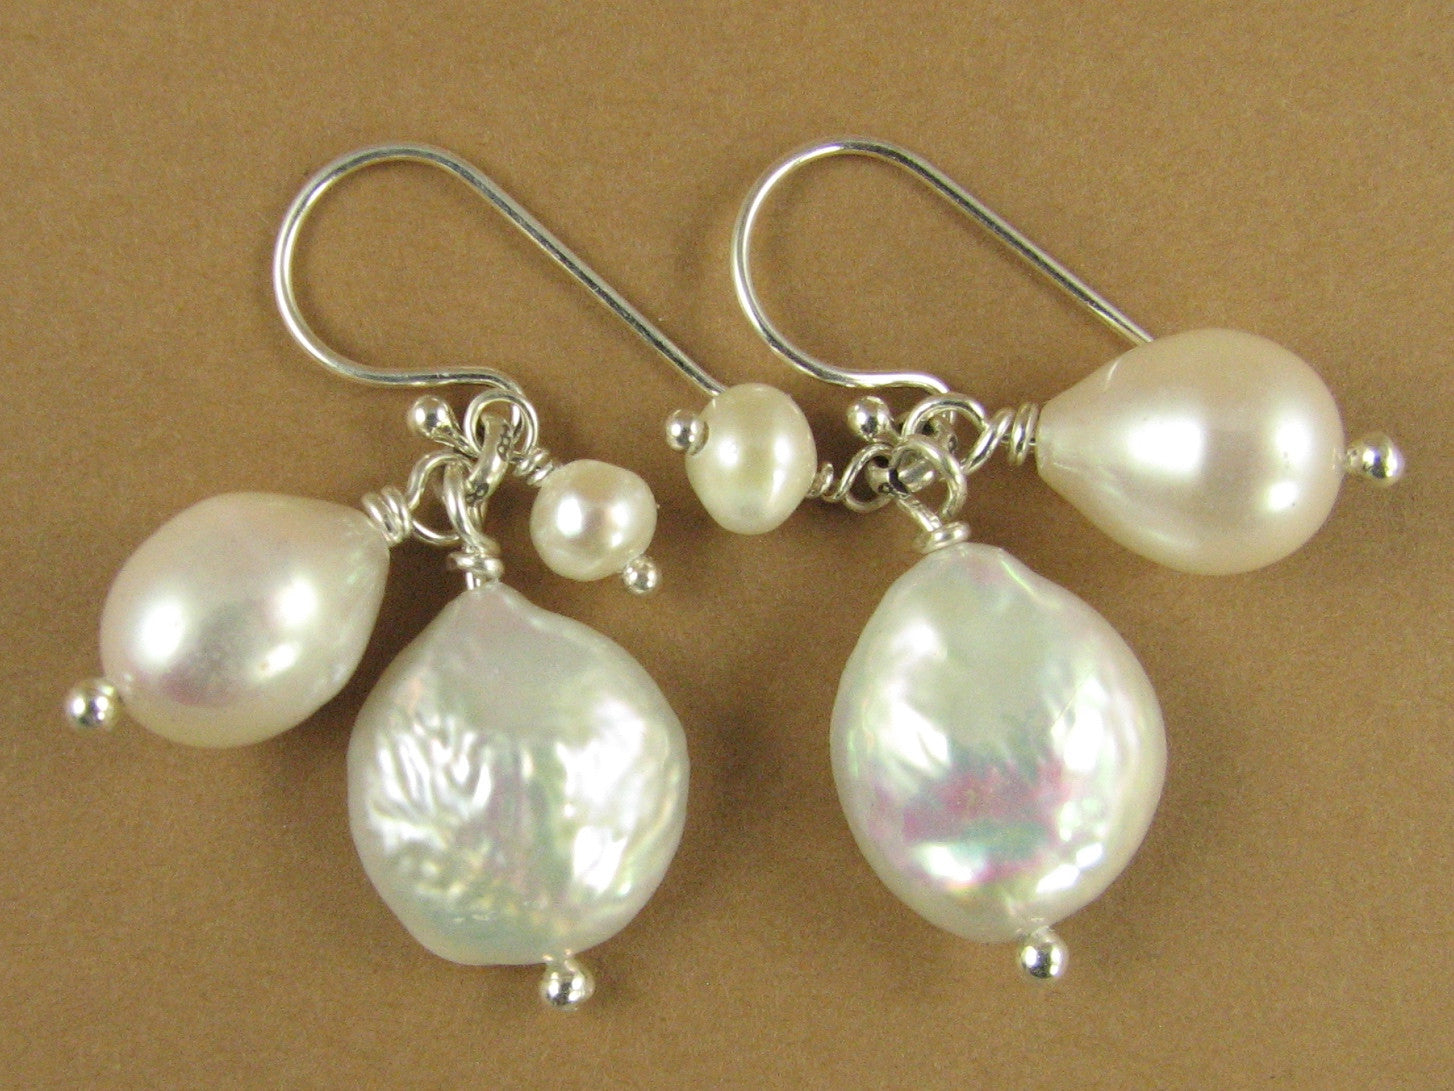 Pearl and silver cluster earrings. Sterling silver. Designer handmade.